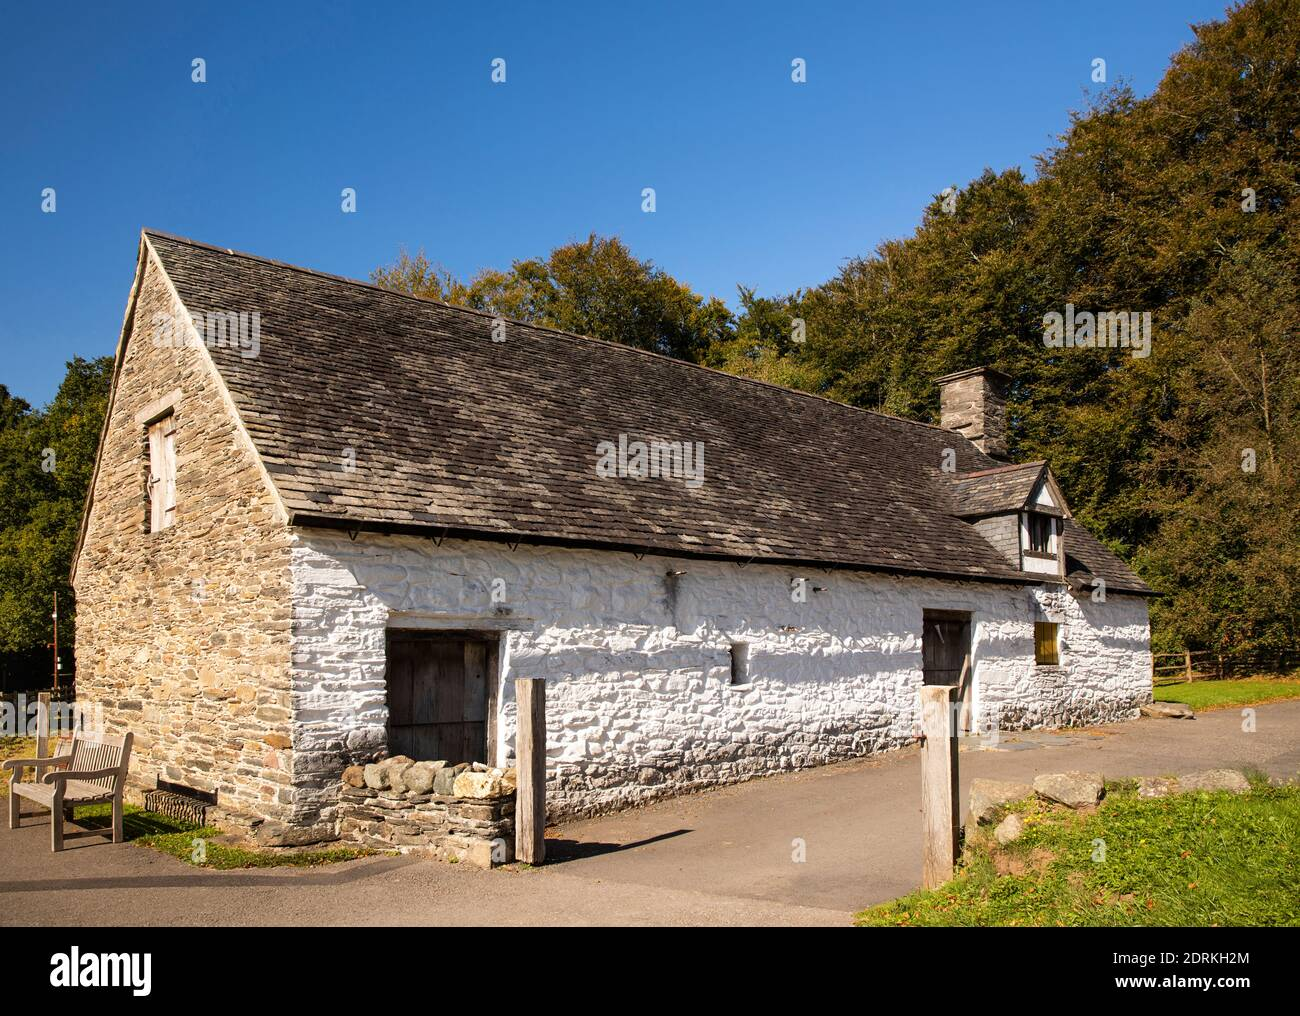 UK, Wales, Cardiff, St Fagans, National Museum of History, 1400s Cilewent Farmhouse from Dyffryn Claerwen, Radnorshire Stock Photo